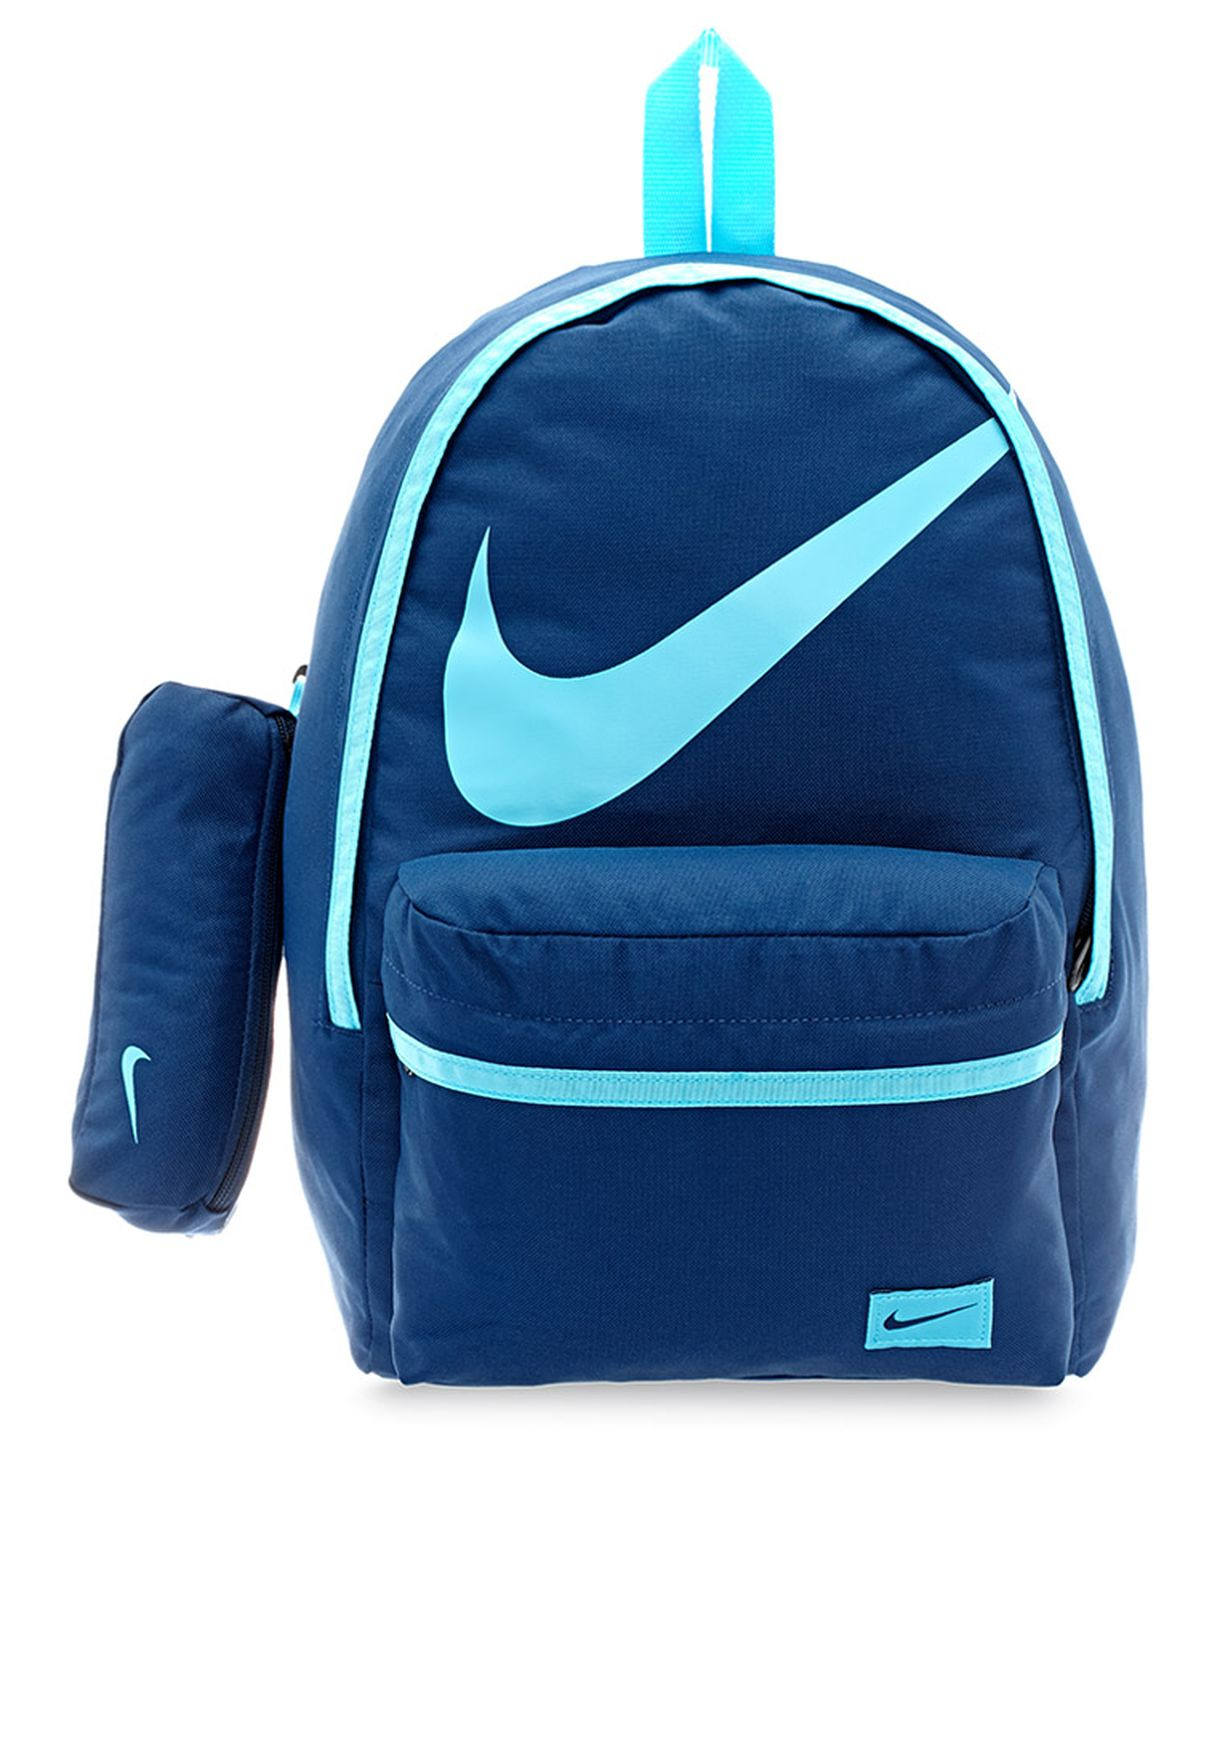 df3addf355 Shop Nike blue Young Athletes Classic Backpack NEQP-BA4665-449 for ...